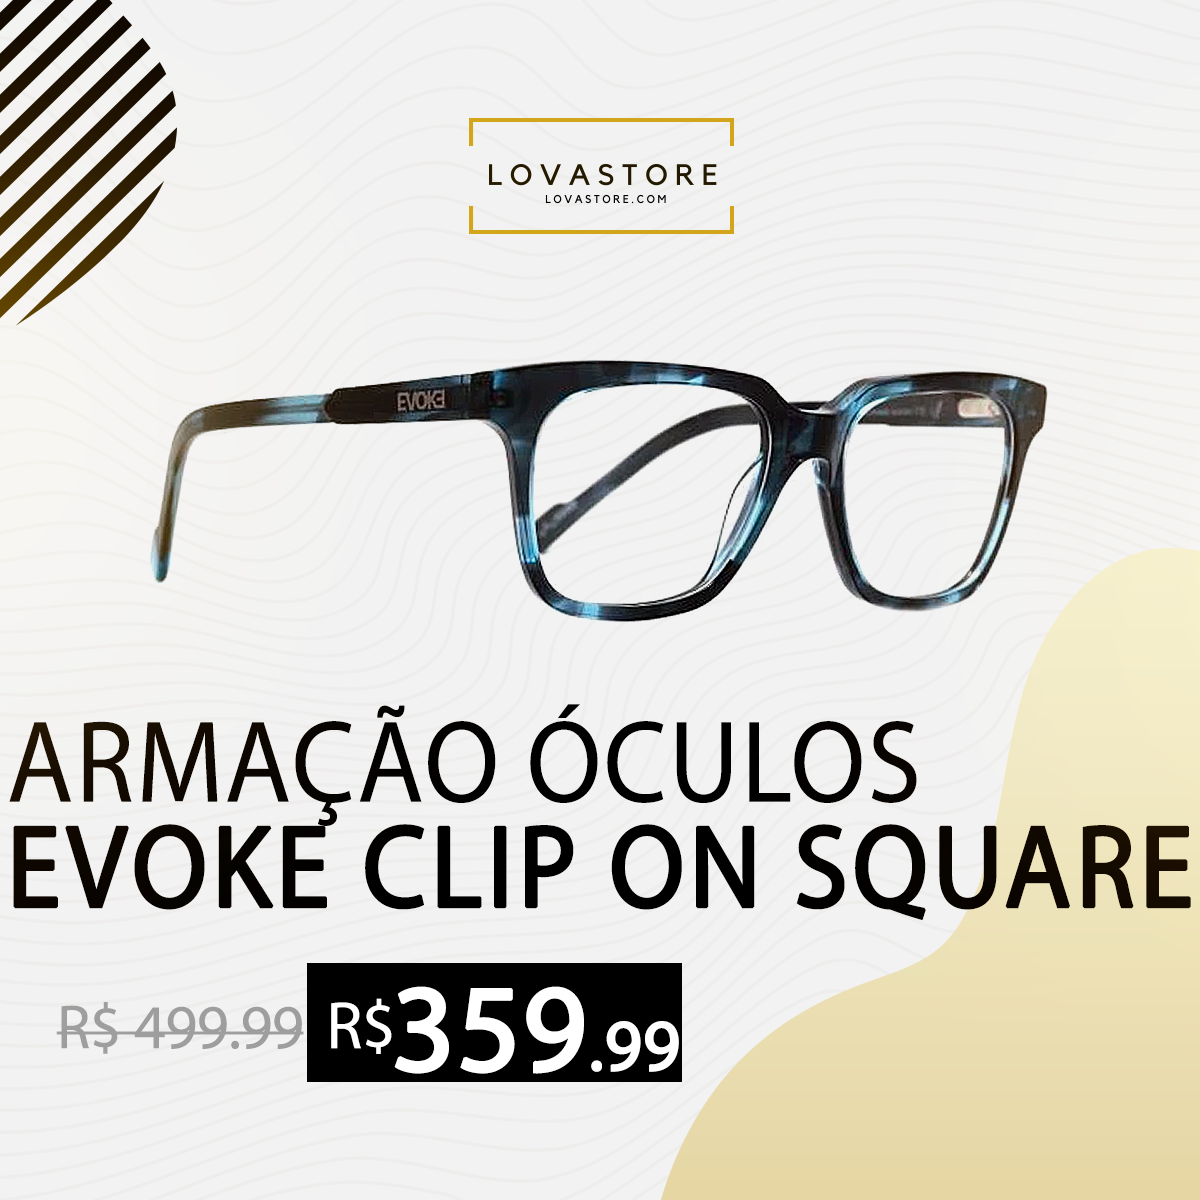 evoke clipon square e01